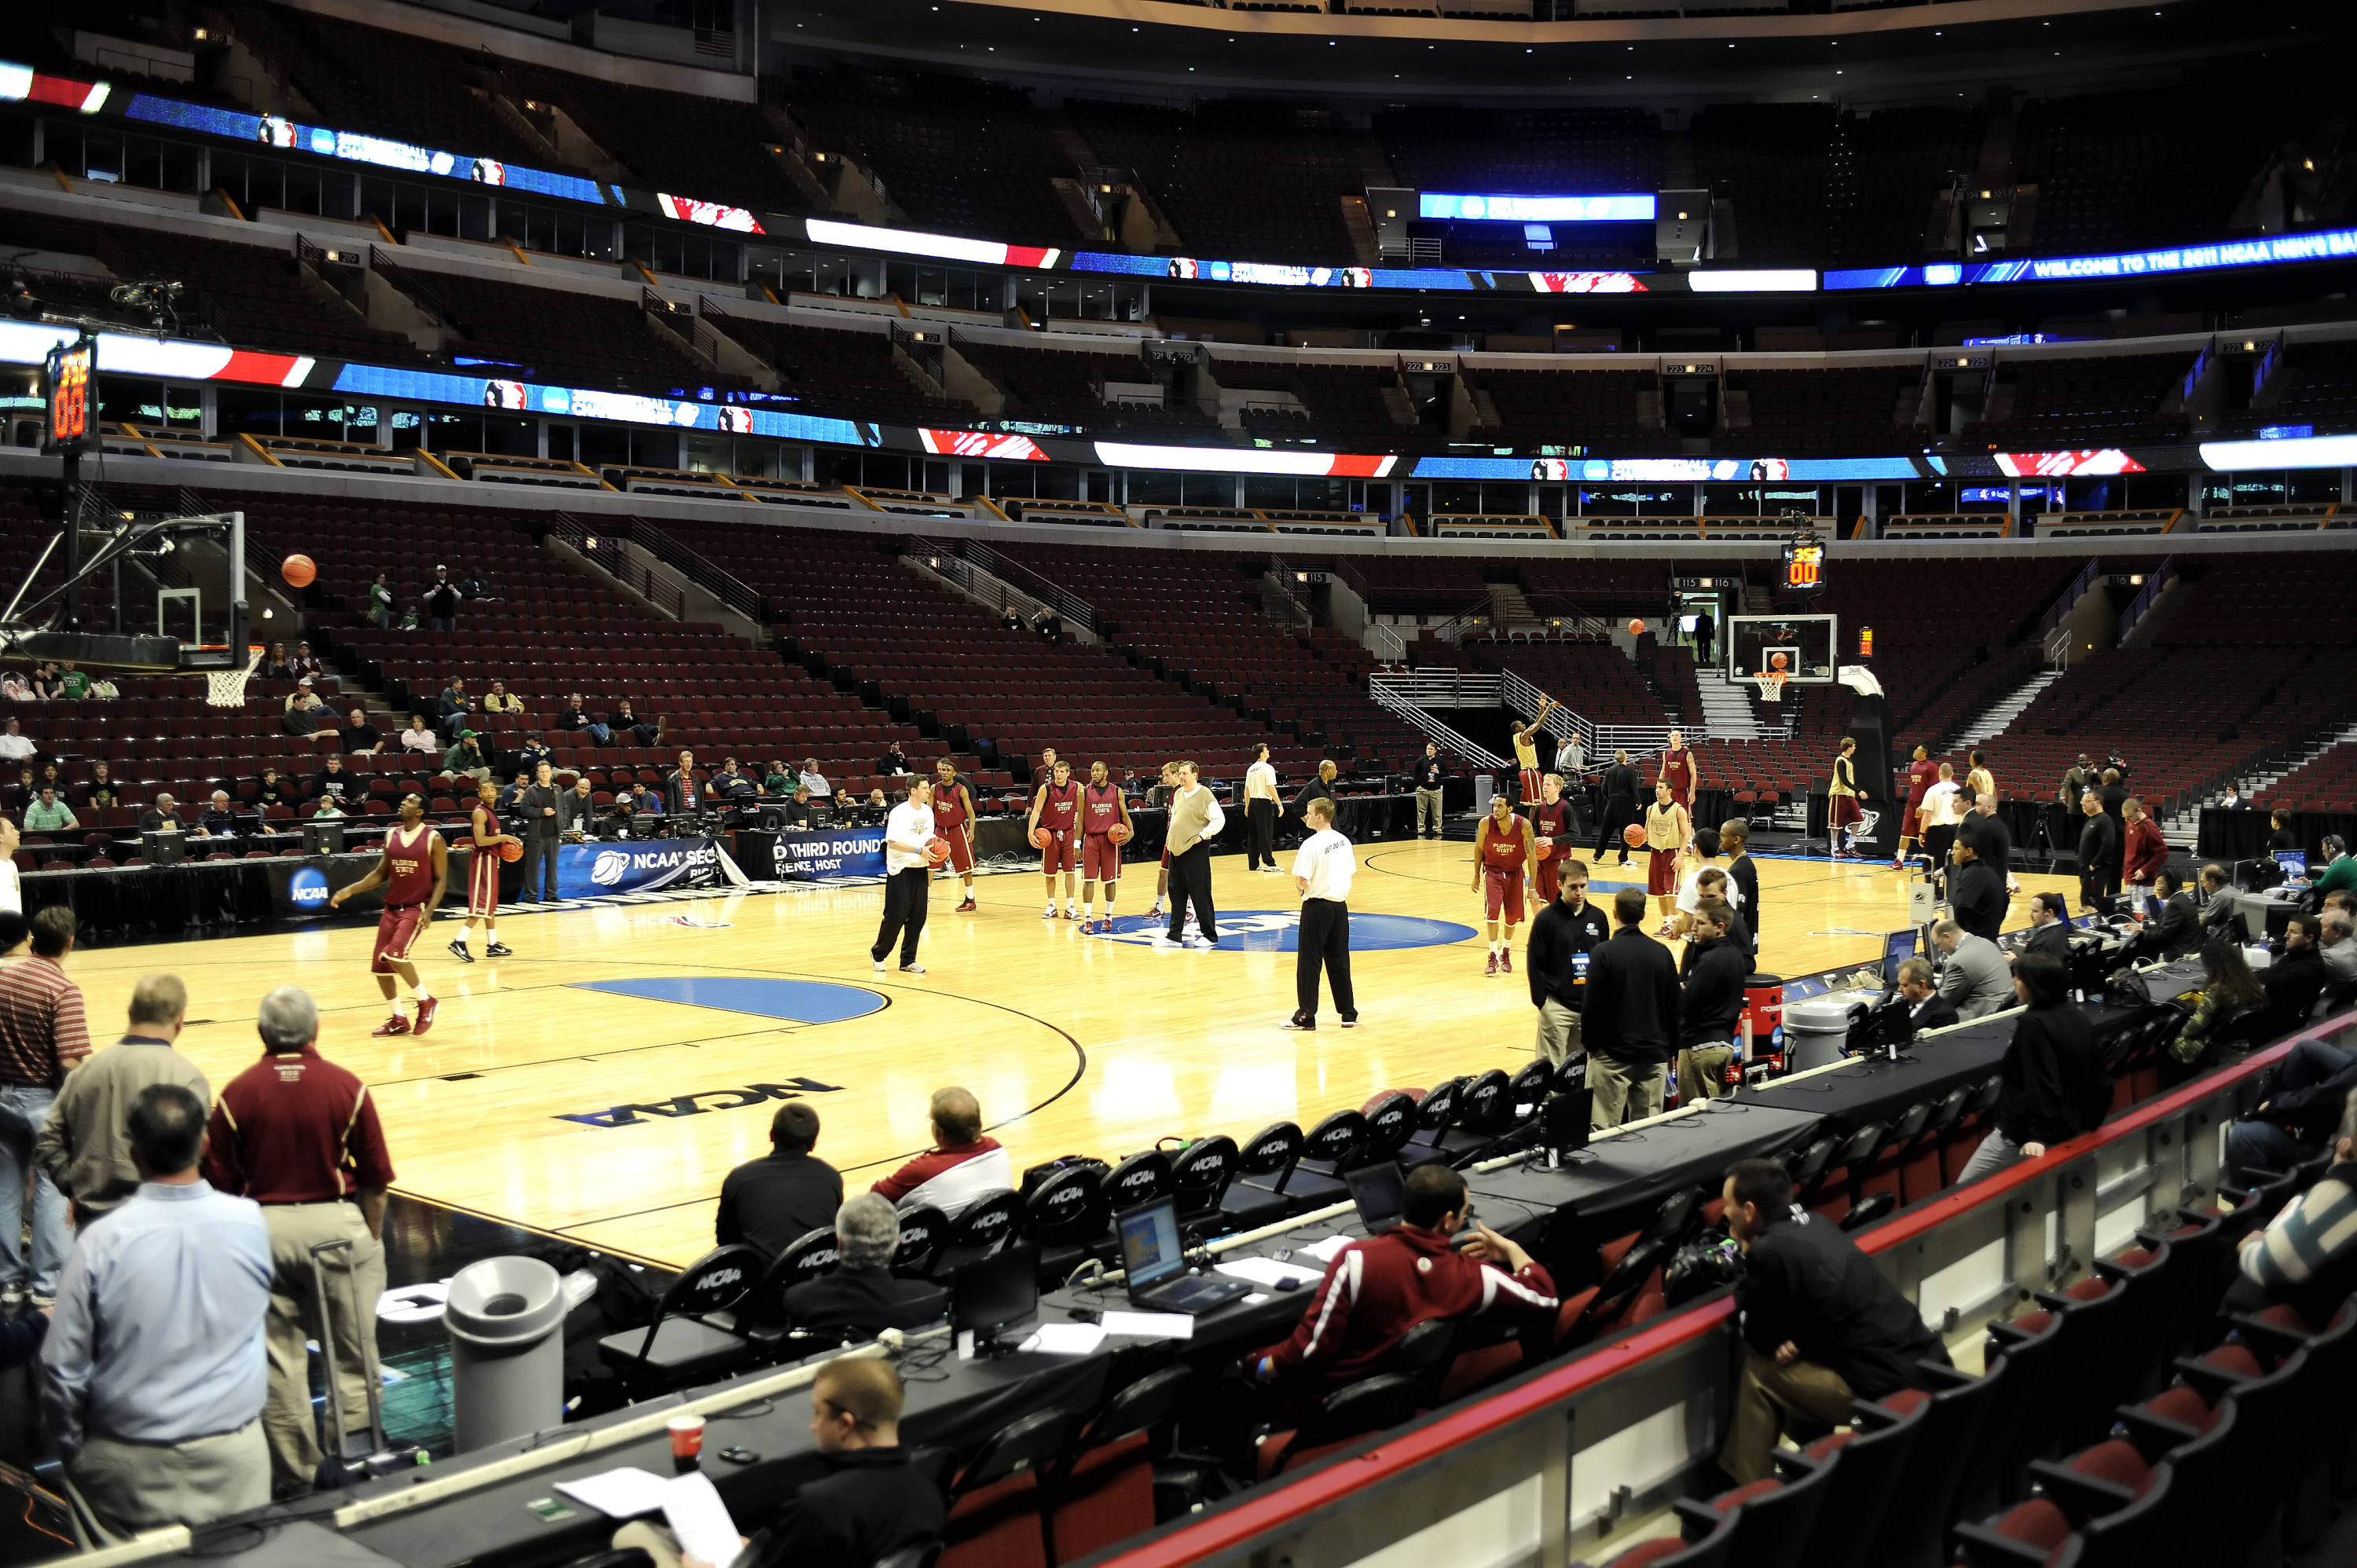 The Seminoles practiced in front of fans and media at the United Center